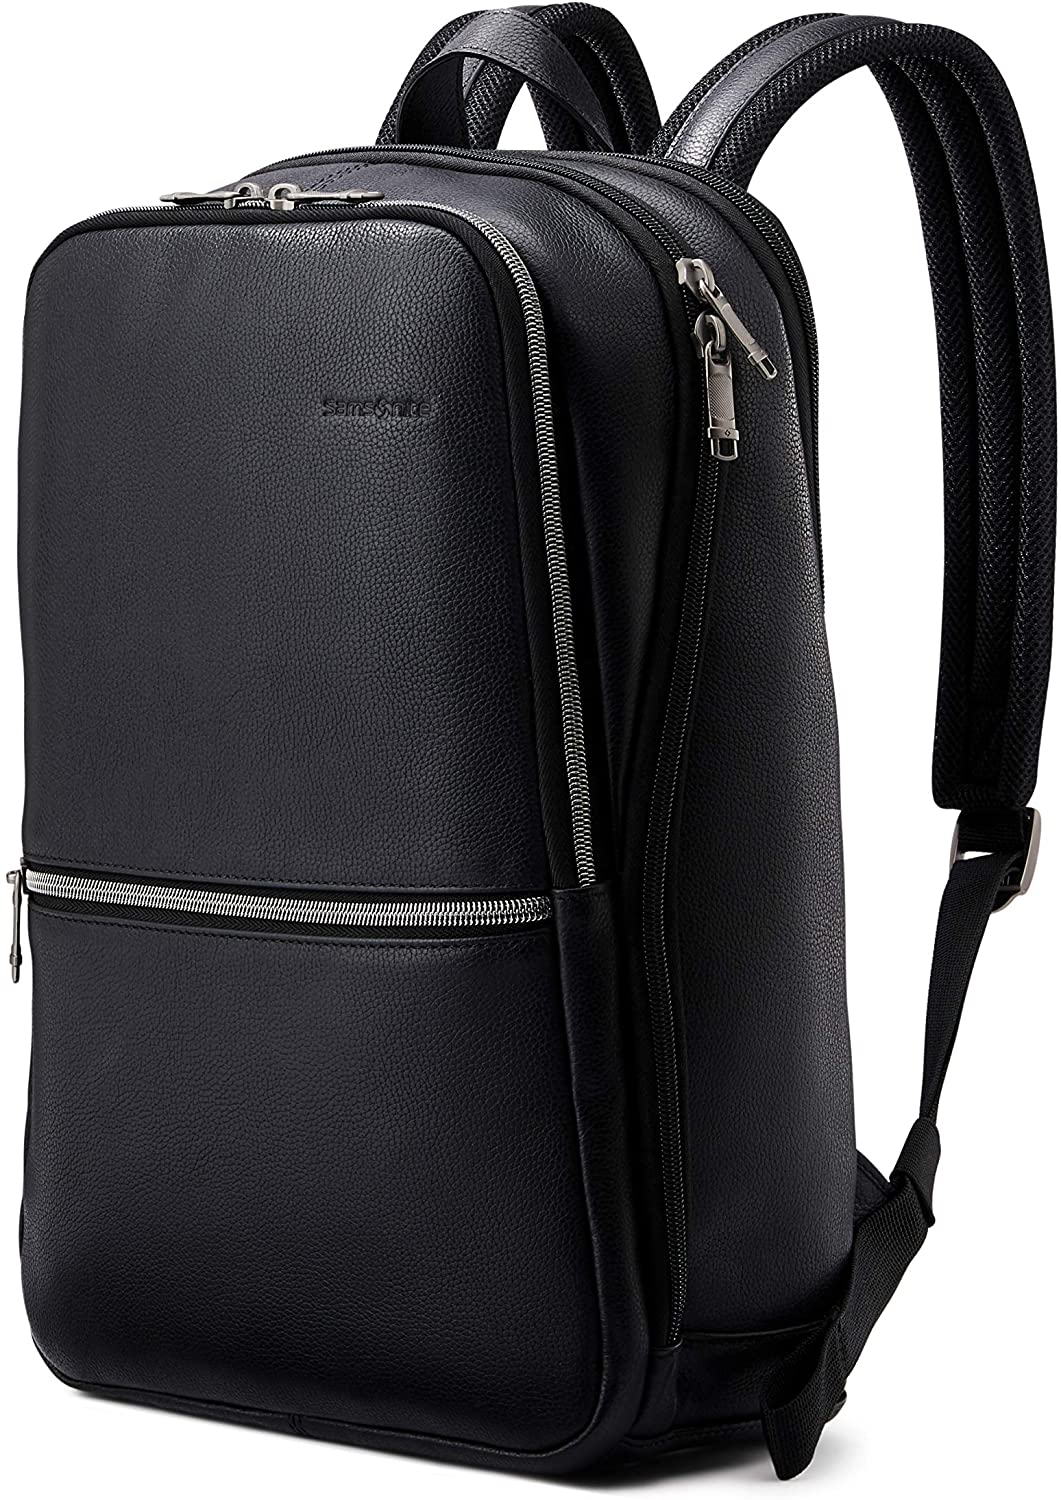 Samsonite Classic Leather Slim Backpack